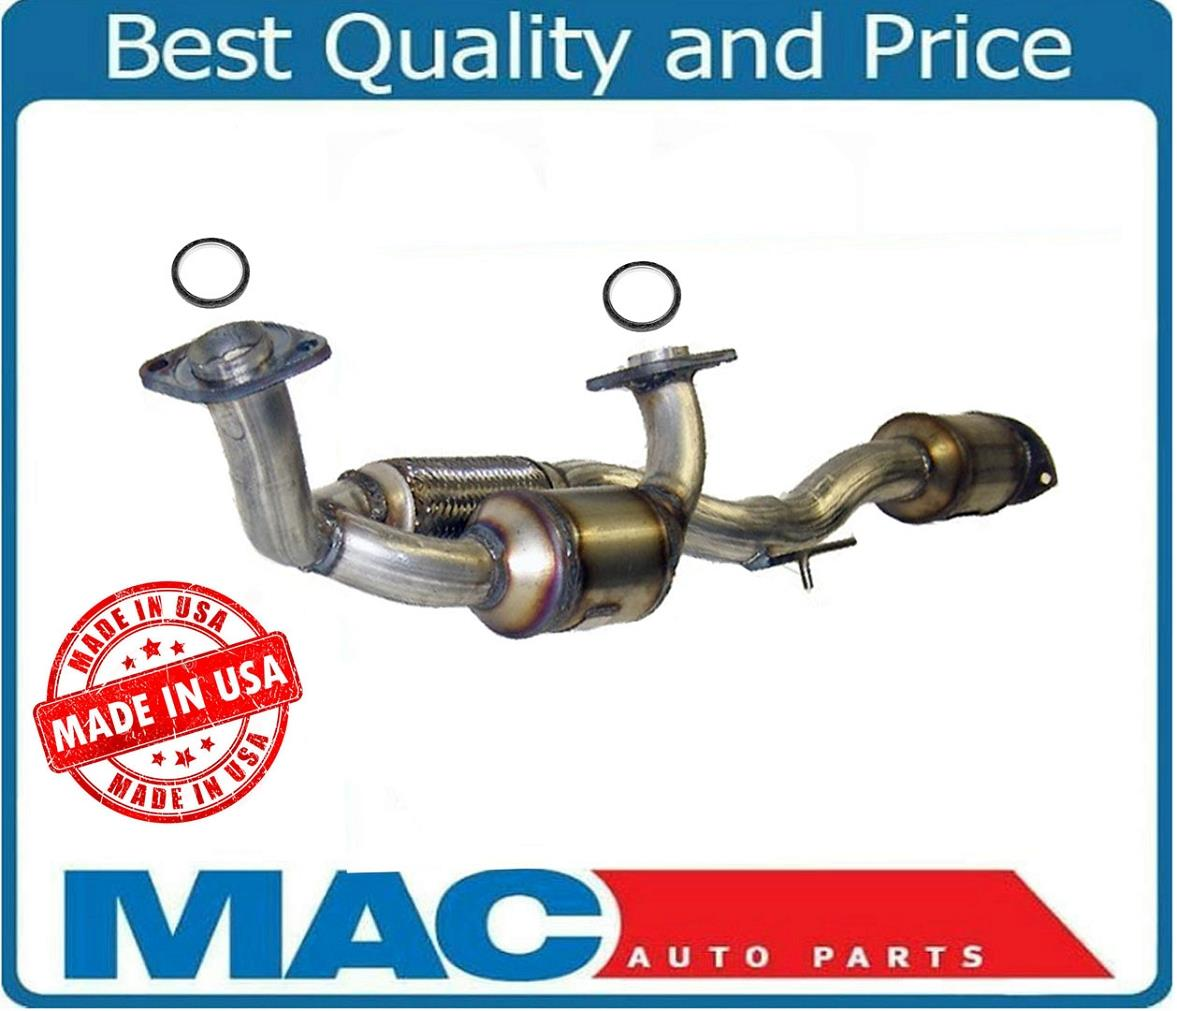 EPA Catalytic Converter /& Pipe Fits 2001 Toyota Camry 3.0L V6 GAS DOHC